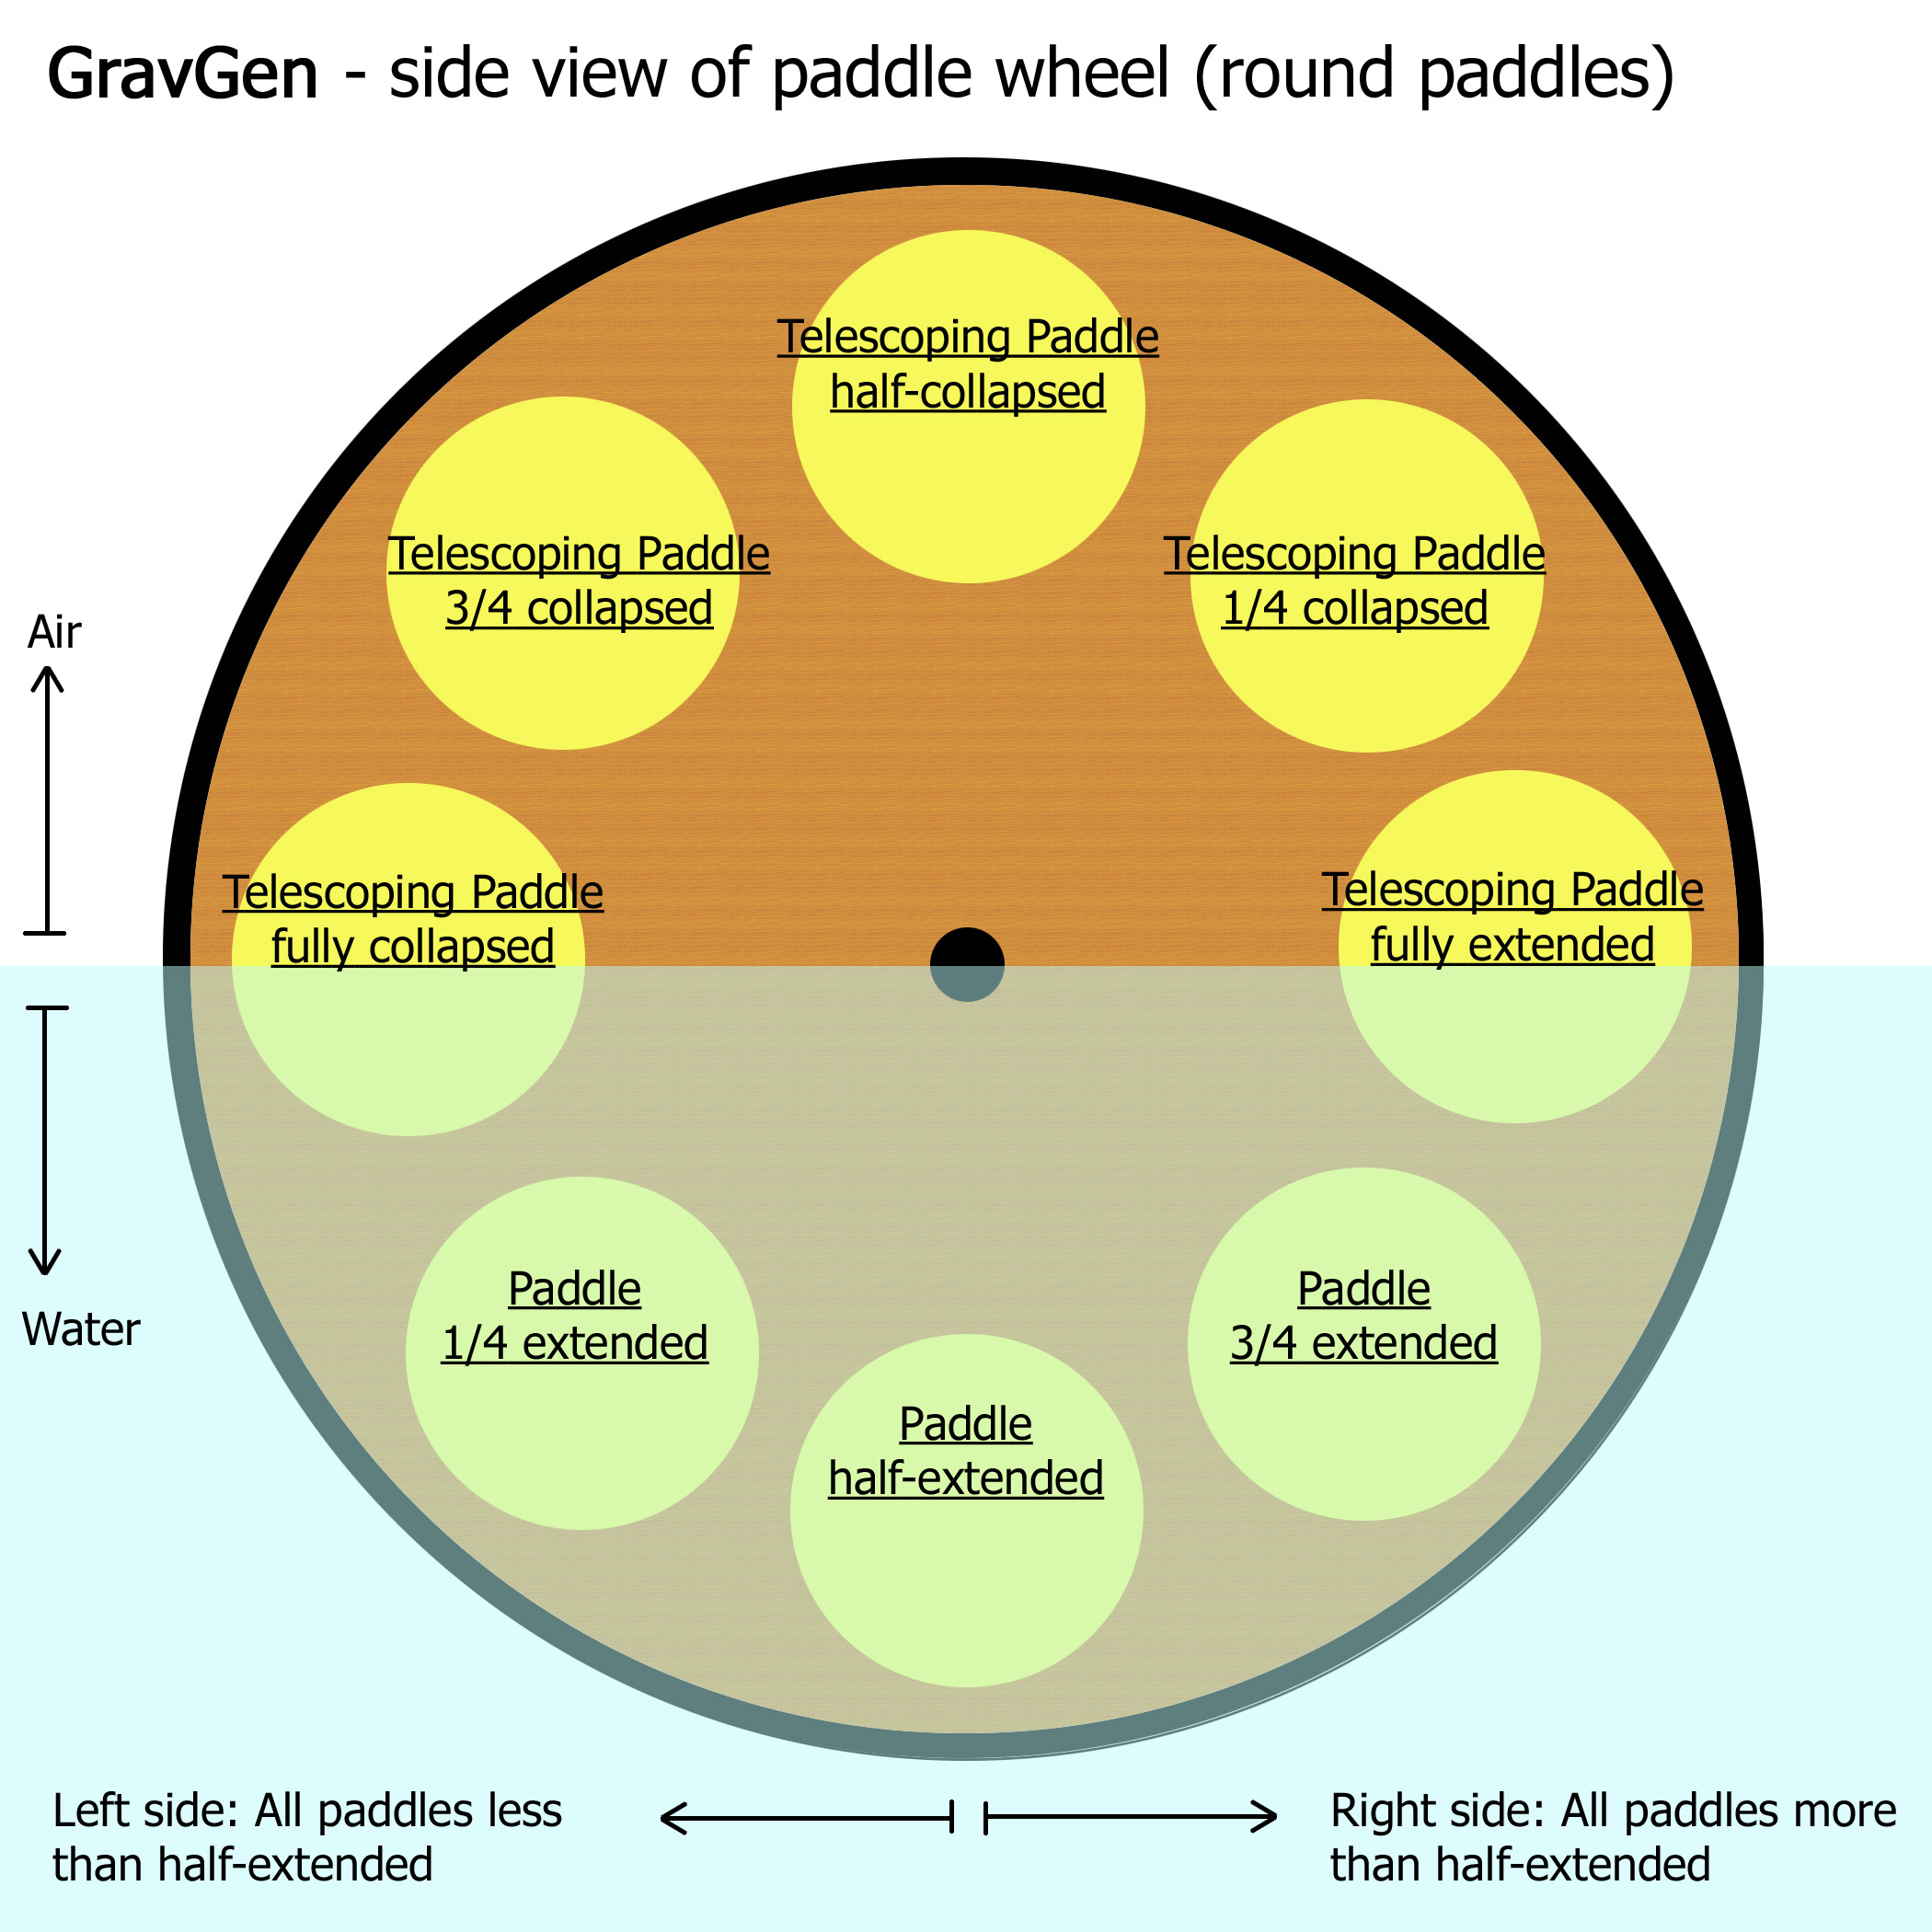 GravGen paddle wheel side view - round paddles copy